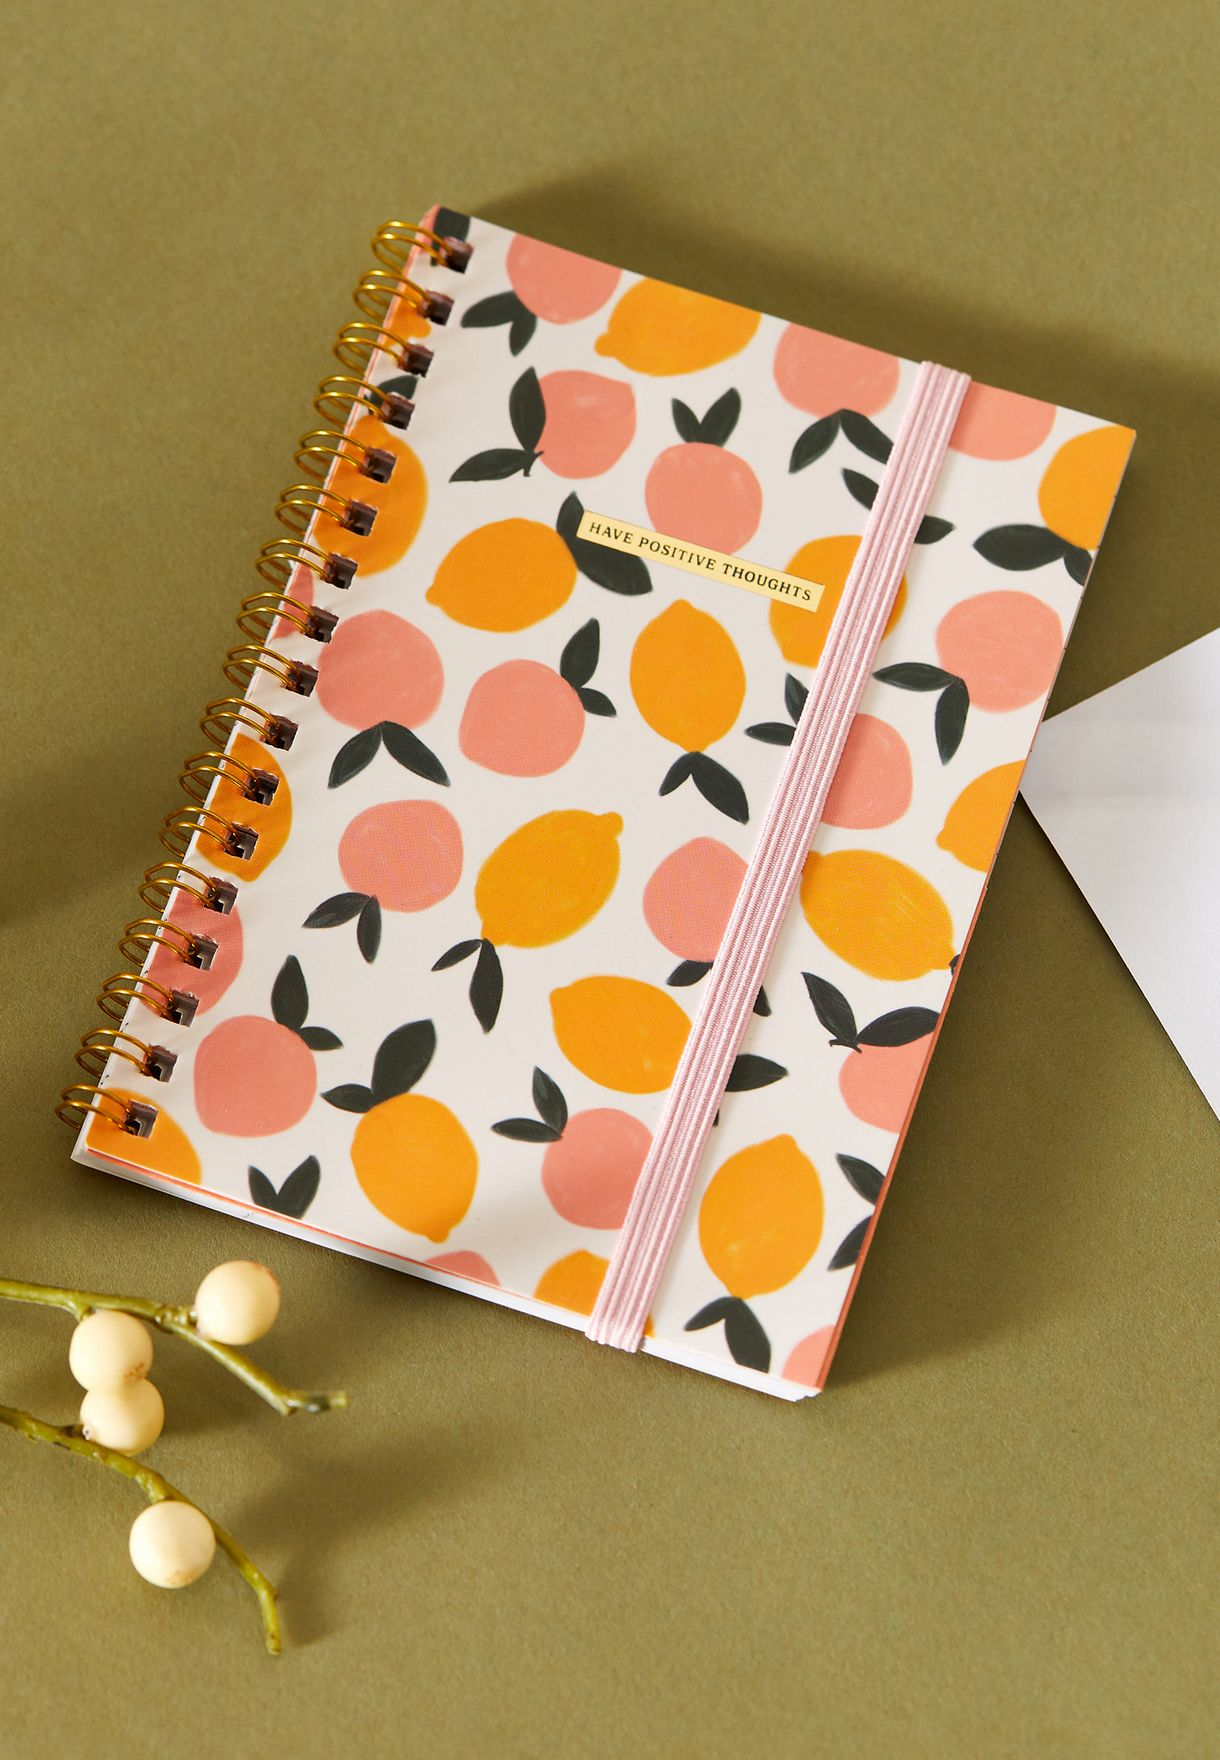 A6 Positive Thought Spinout Notebook